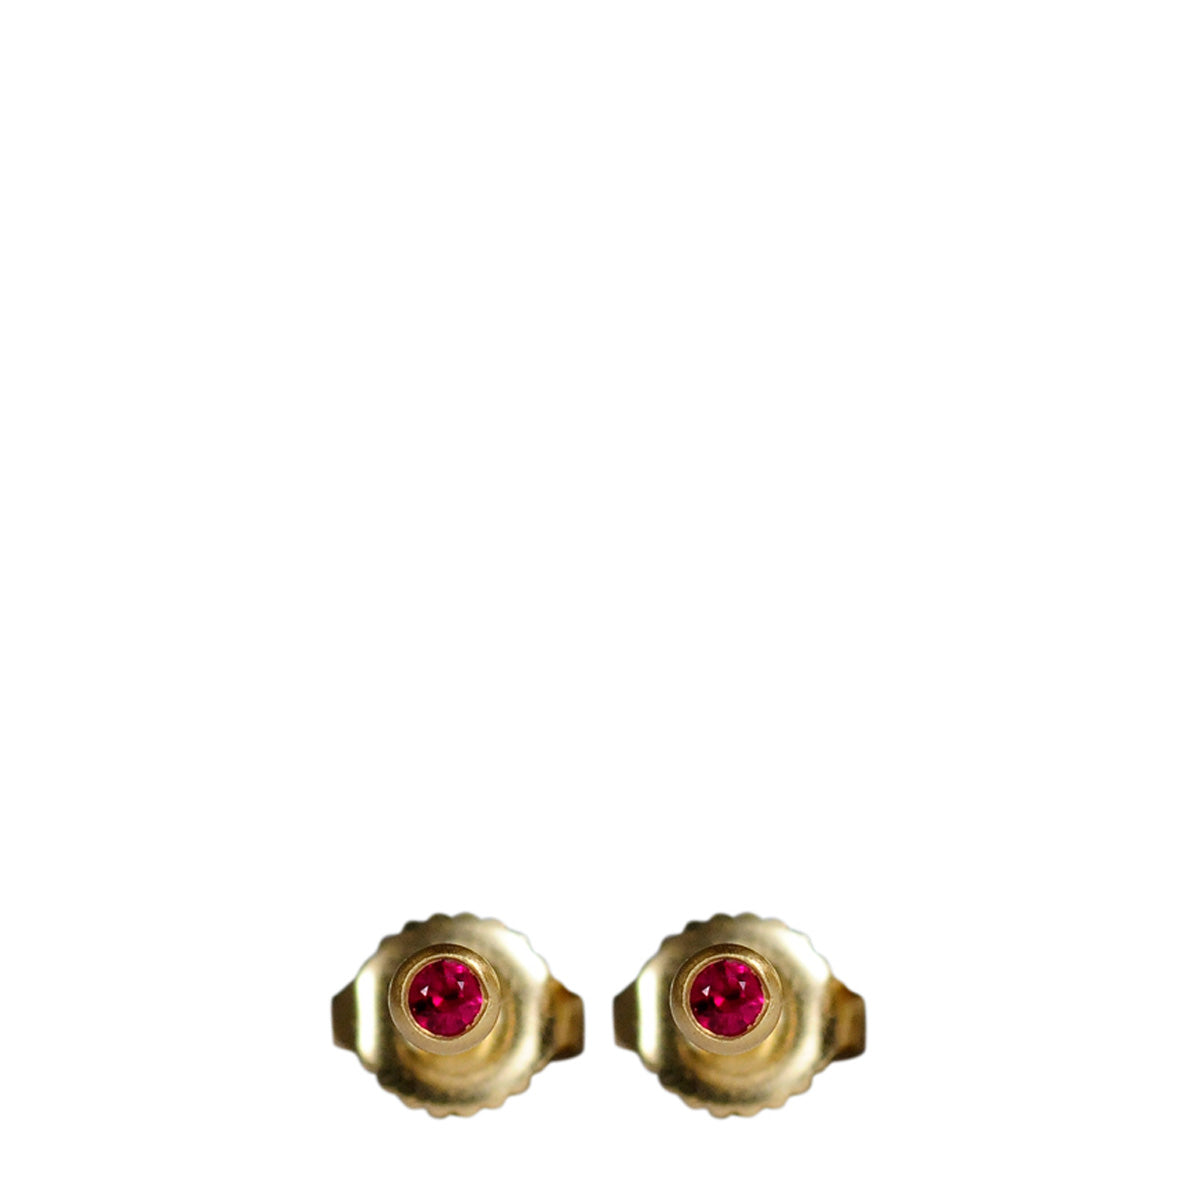 18K Gold 3mm Ruby Stud Earrings